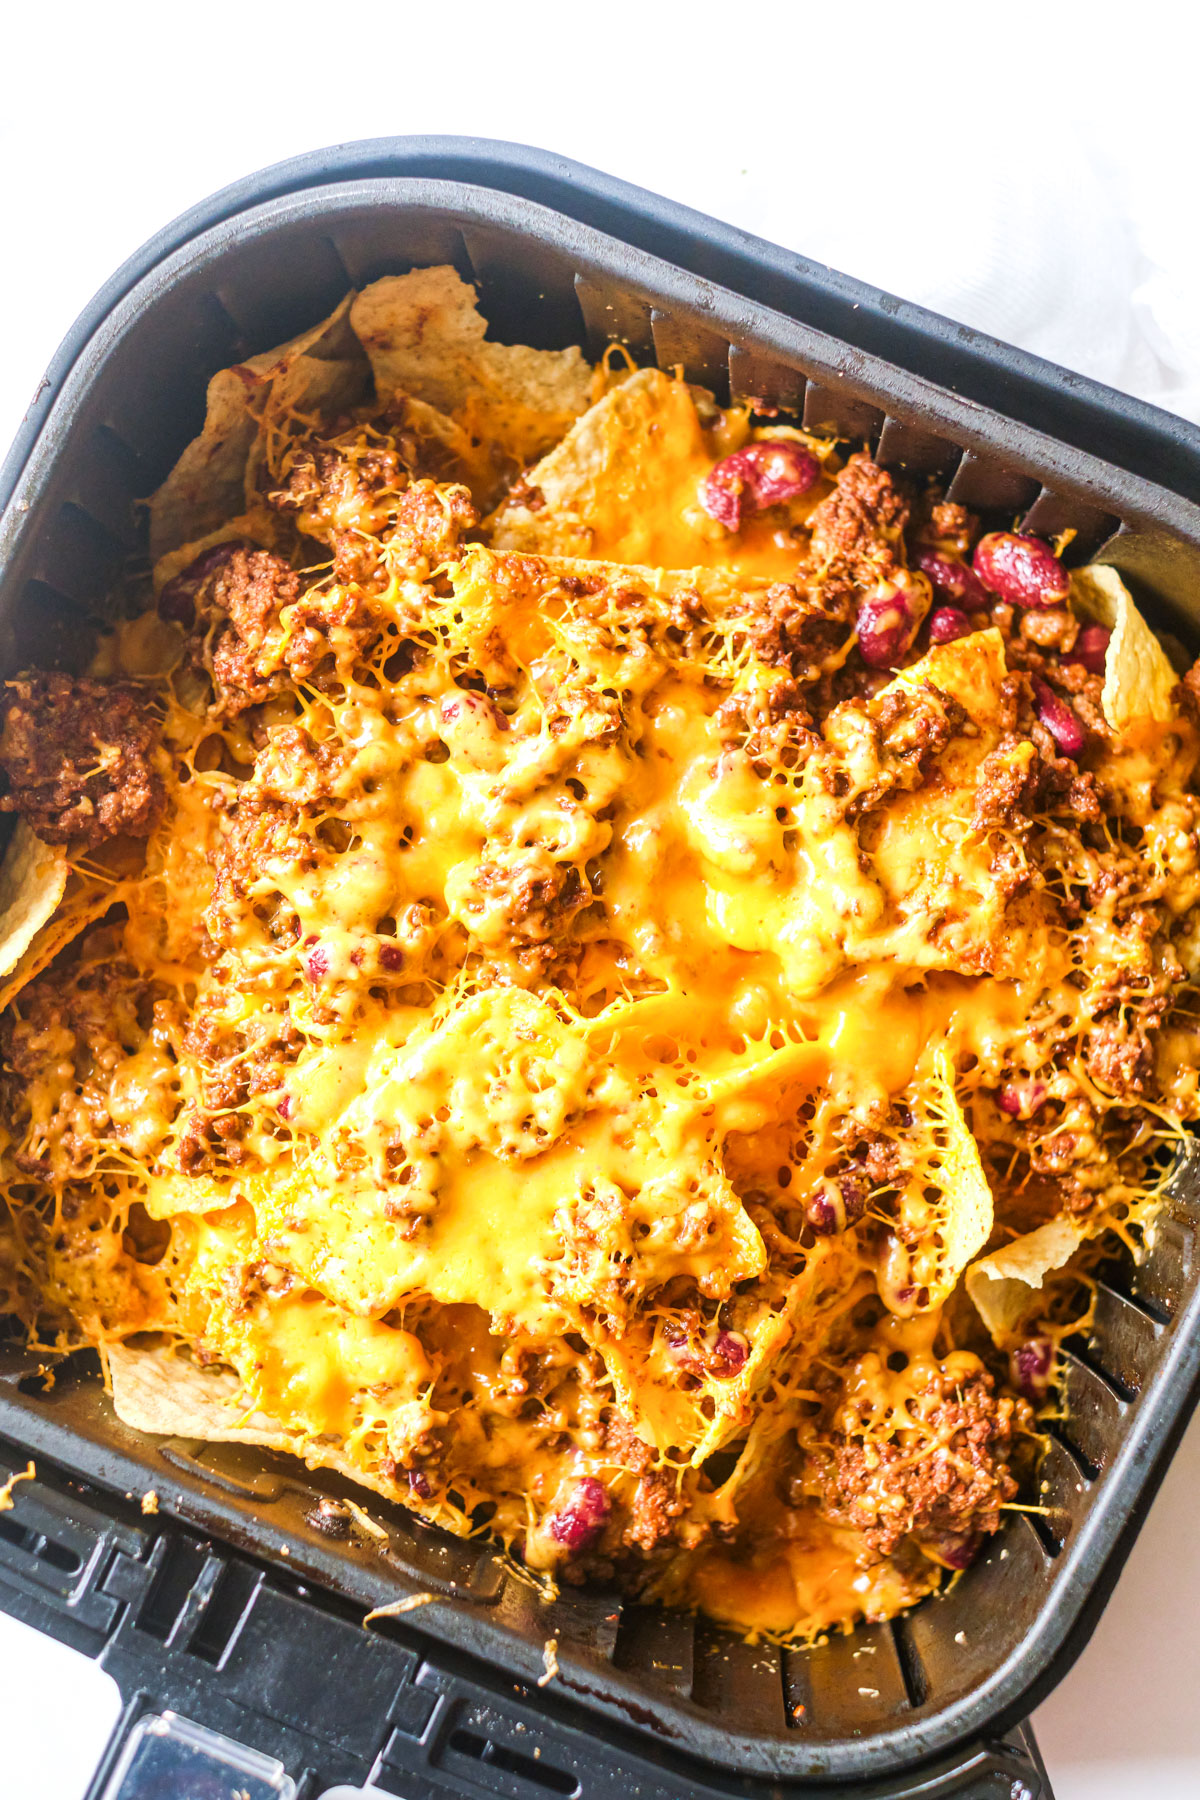 an air fryer basket filled with chili nachos